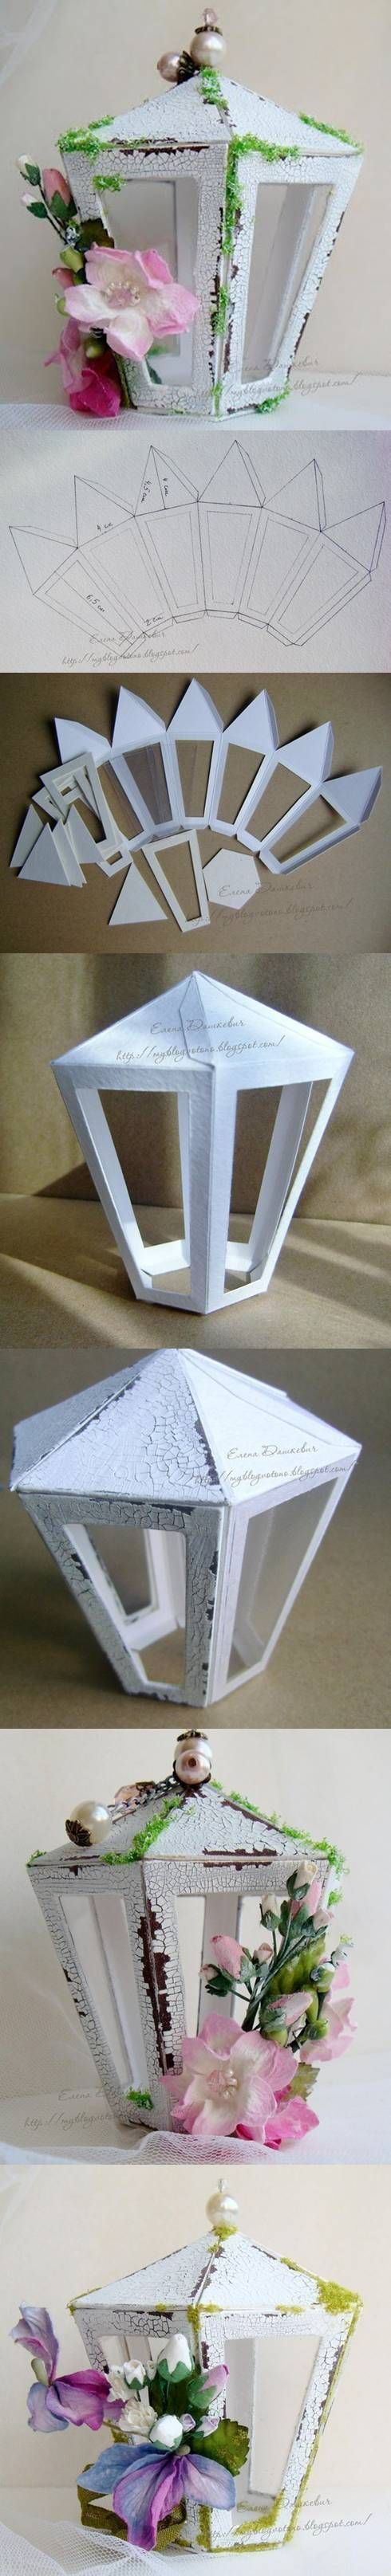 DIY Cardboard Lantern Template DIY Projects | UsefulDIY.com Follow Us on Facebook ==> http://www.facebook.com/UsefulDiy: